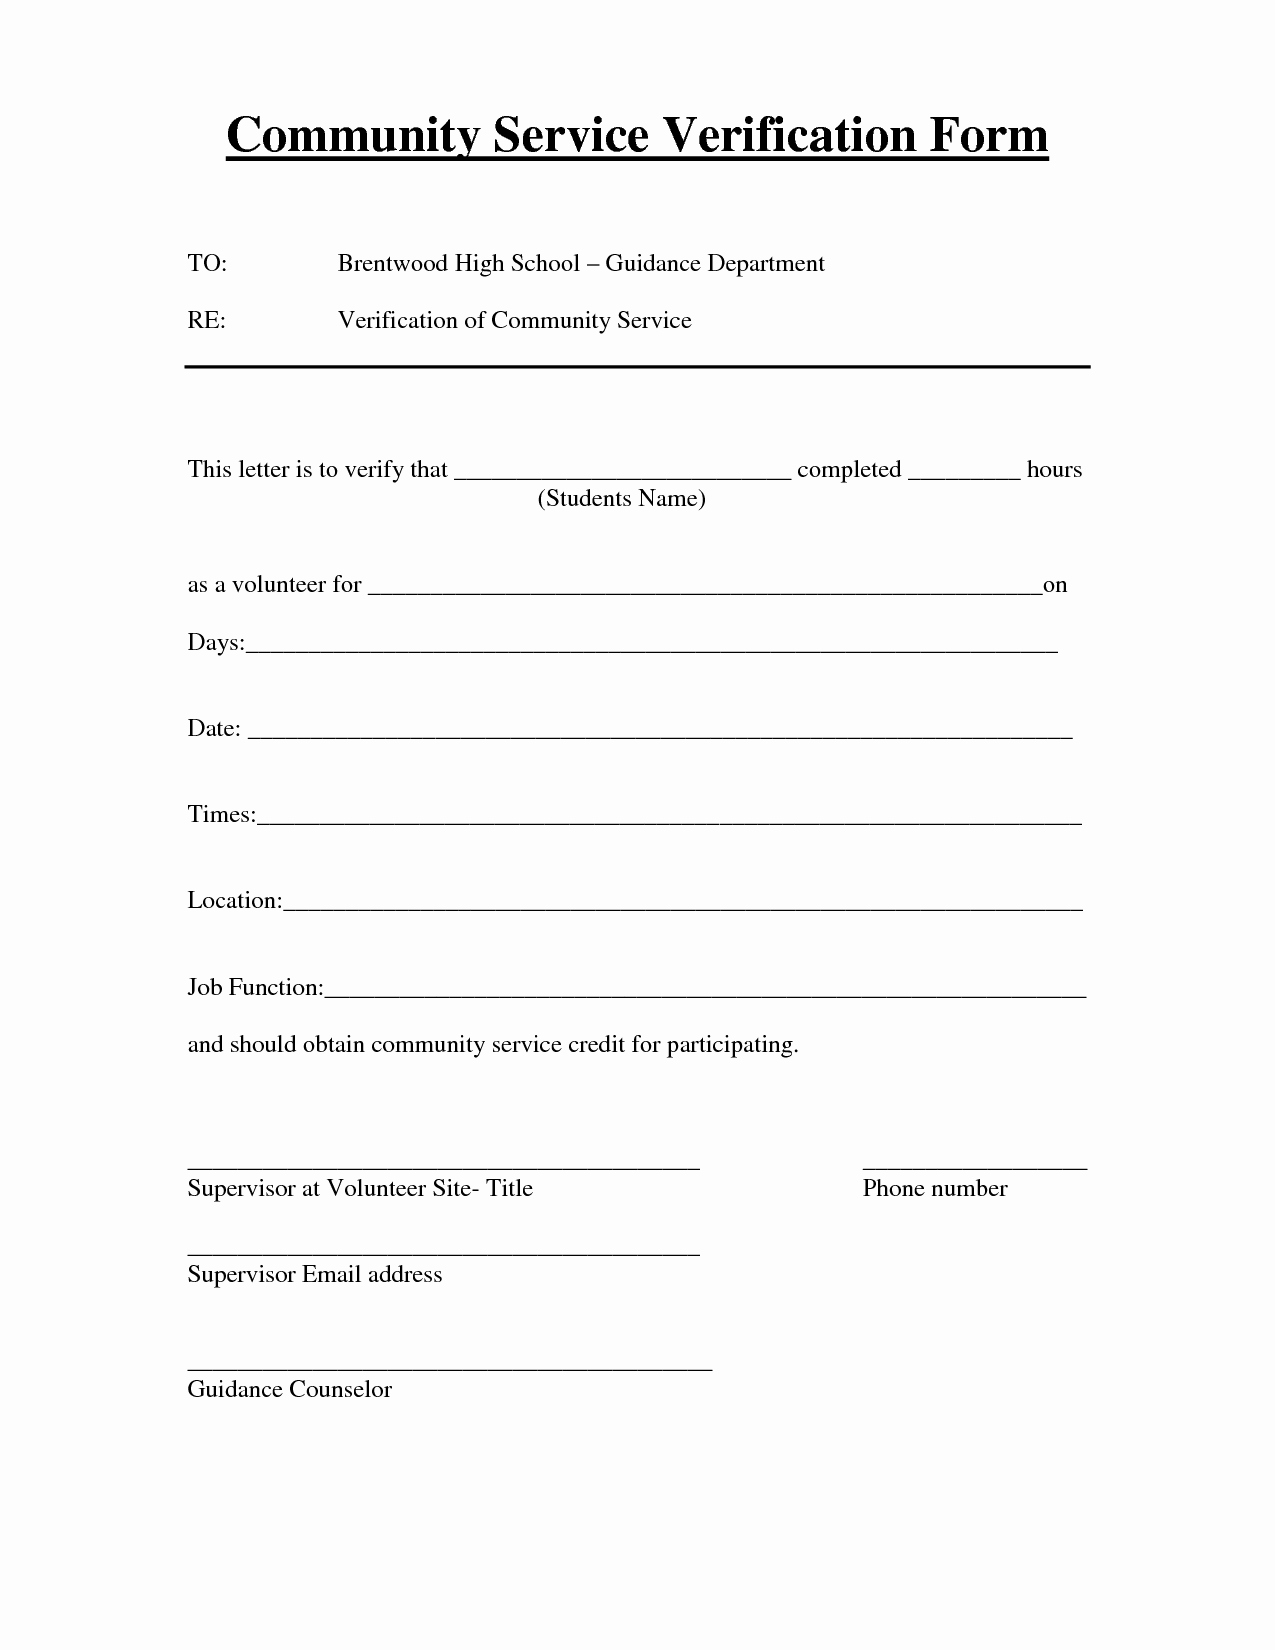 Community Service forms Templates Beautiful Best S Of Verification Volunteer Hours Letter